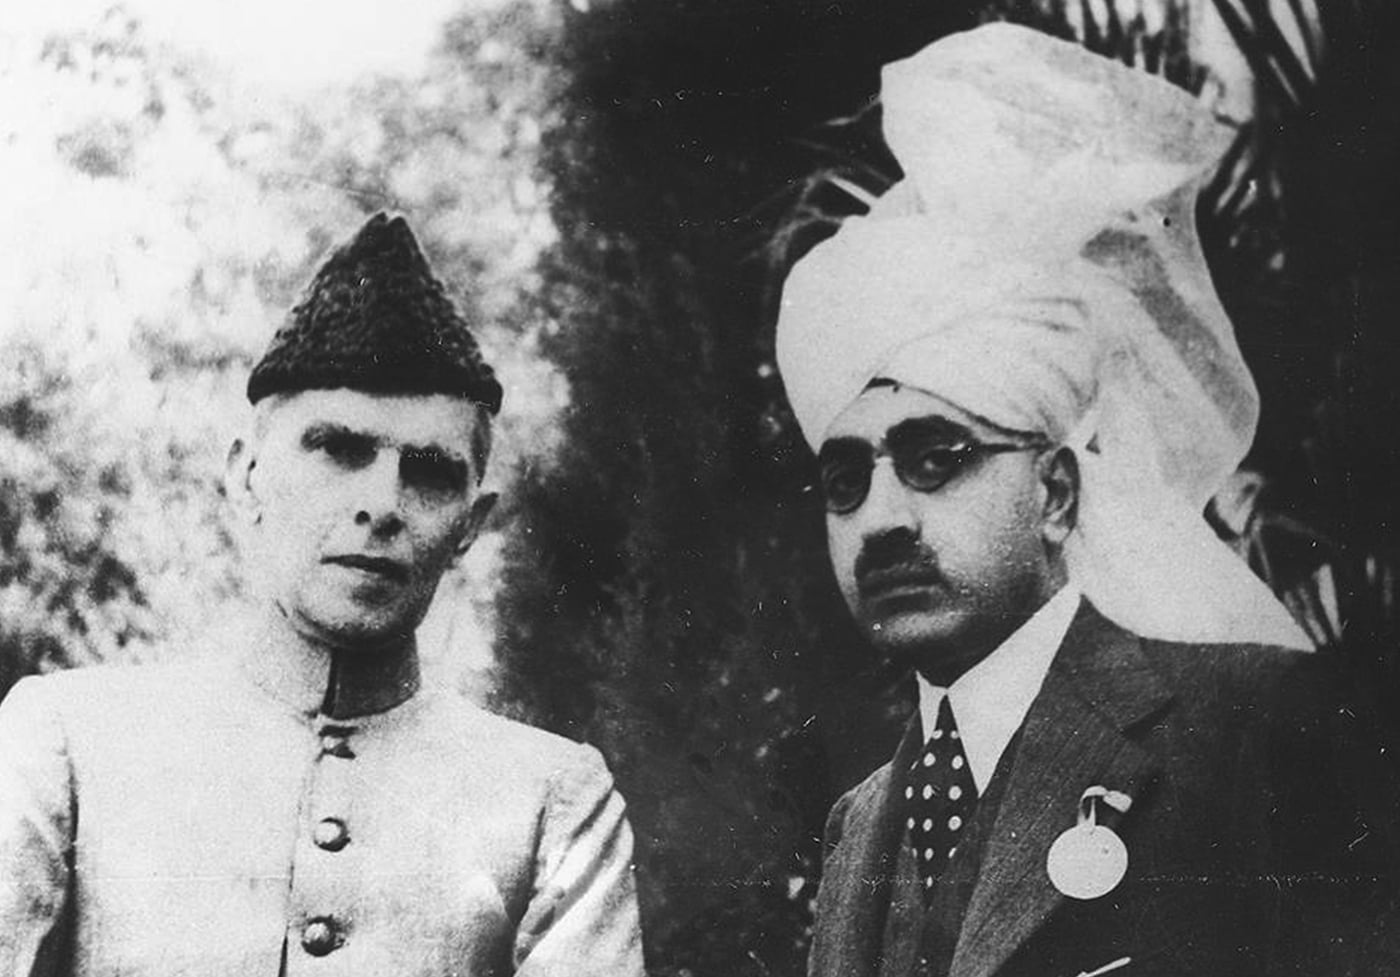 Quaid-i-Azam Mohammad Ali Jinnah with Sir Sikandar Hayat Khan, probably at the time when the Jinnah-Sikandar Pact is signed in 1937. — Courtesy National Archives Islamabad